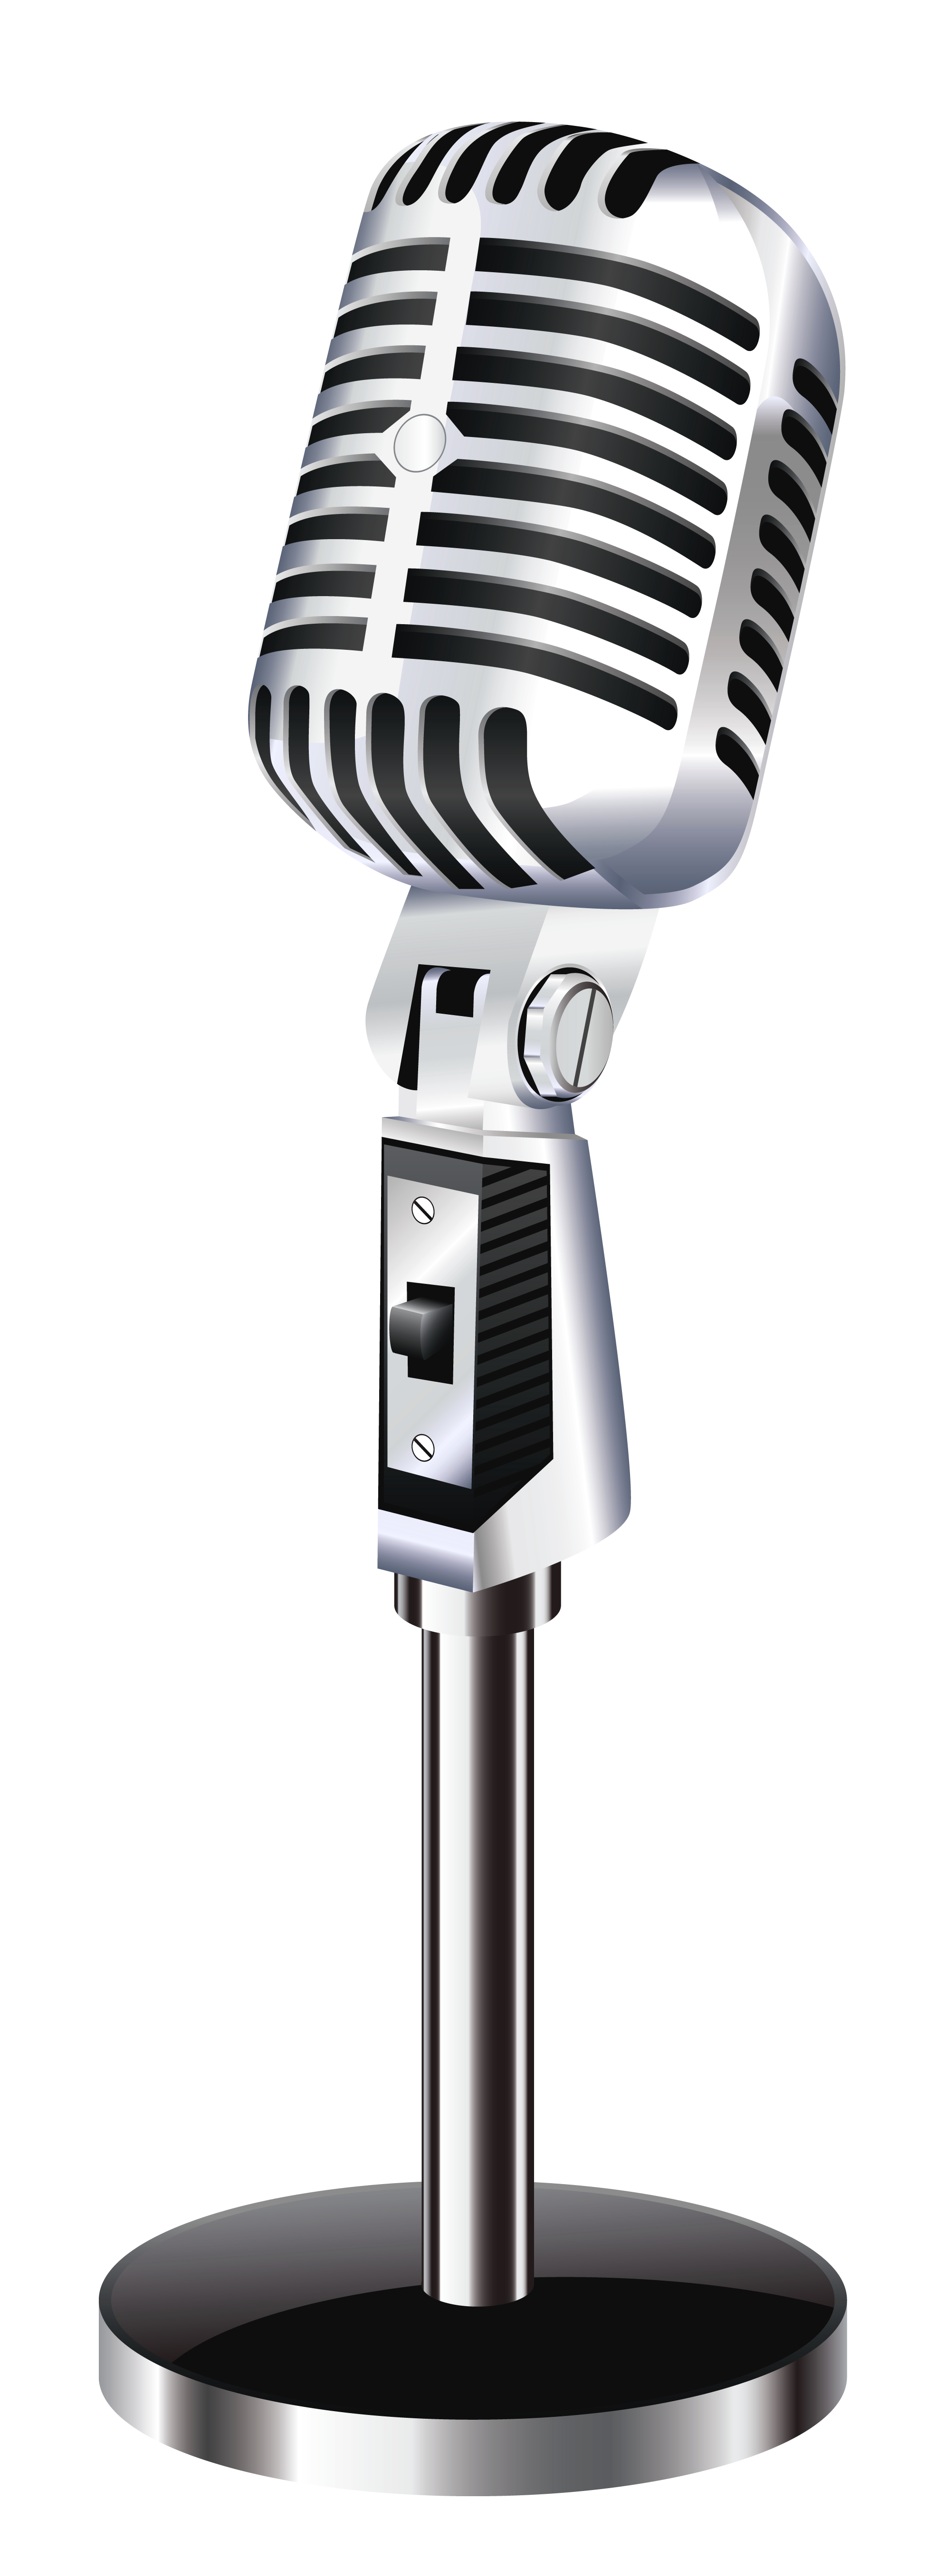 Retro Microphone Png Clipart Picture Microphone Icon Microphone Png